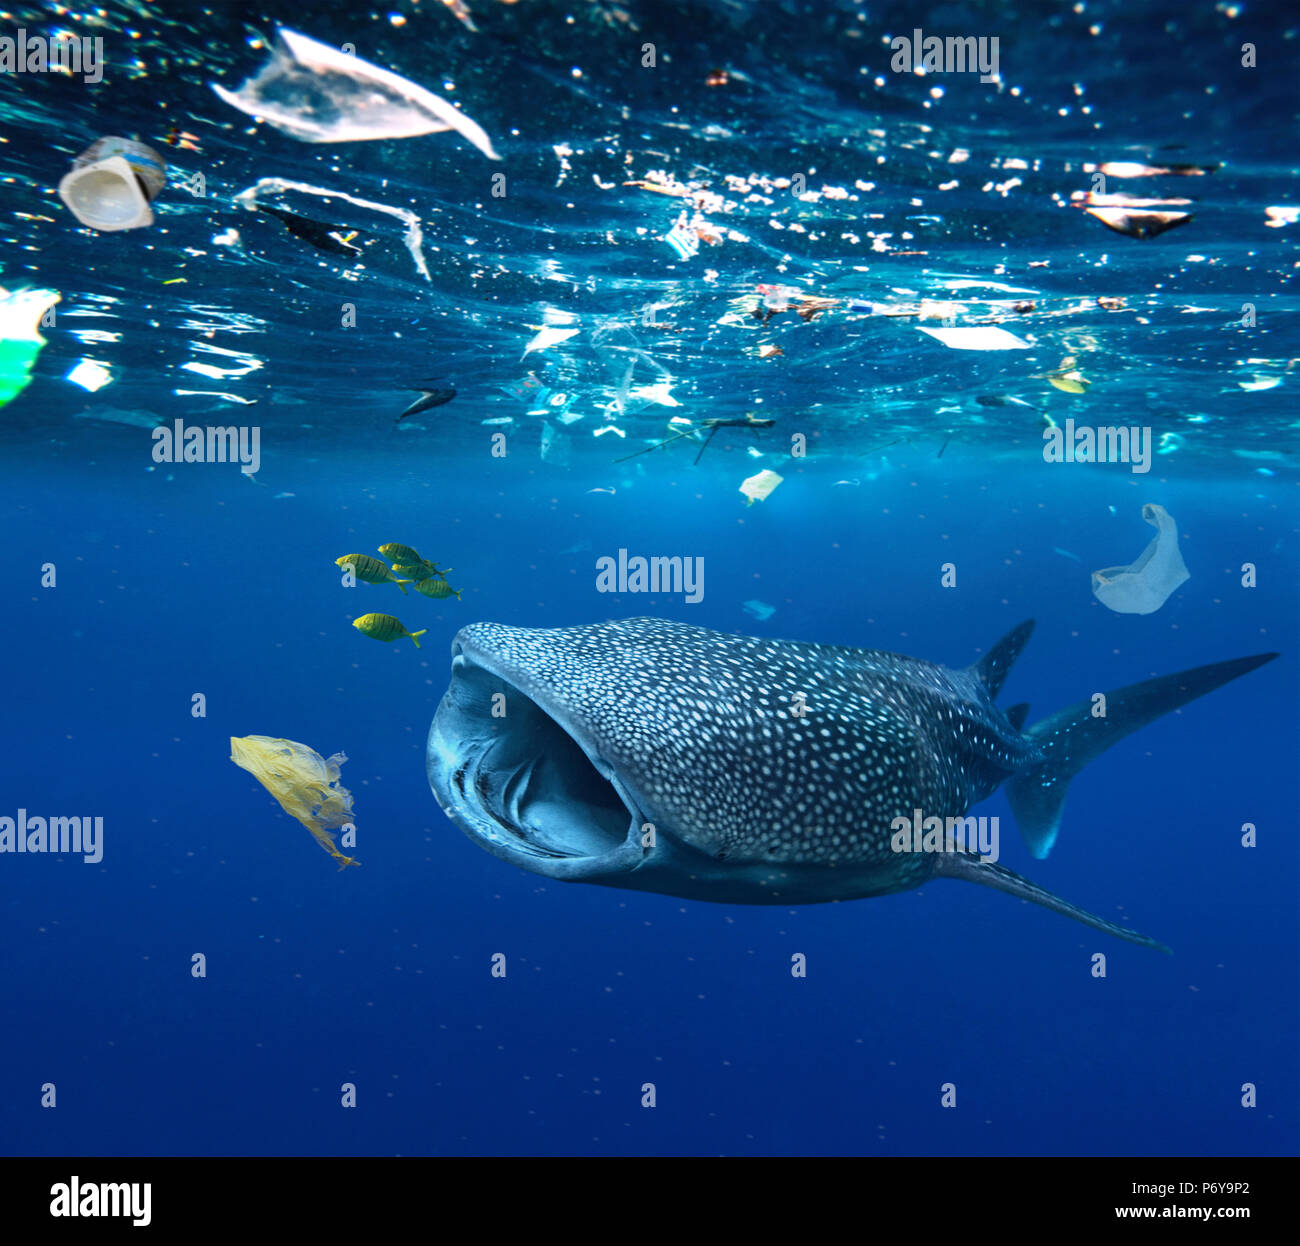 Whale shark, Rhincodon typus, feeding in the middle of plastic bags and other plastic garbage. Stock Photo